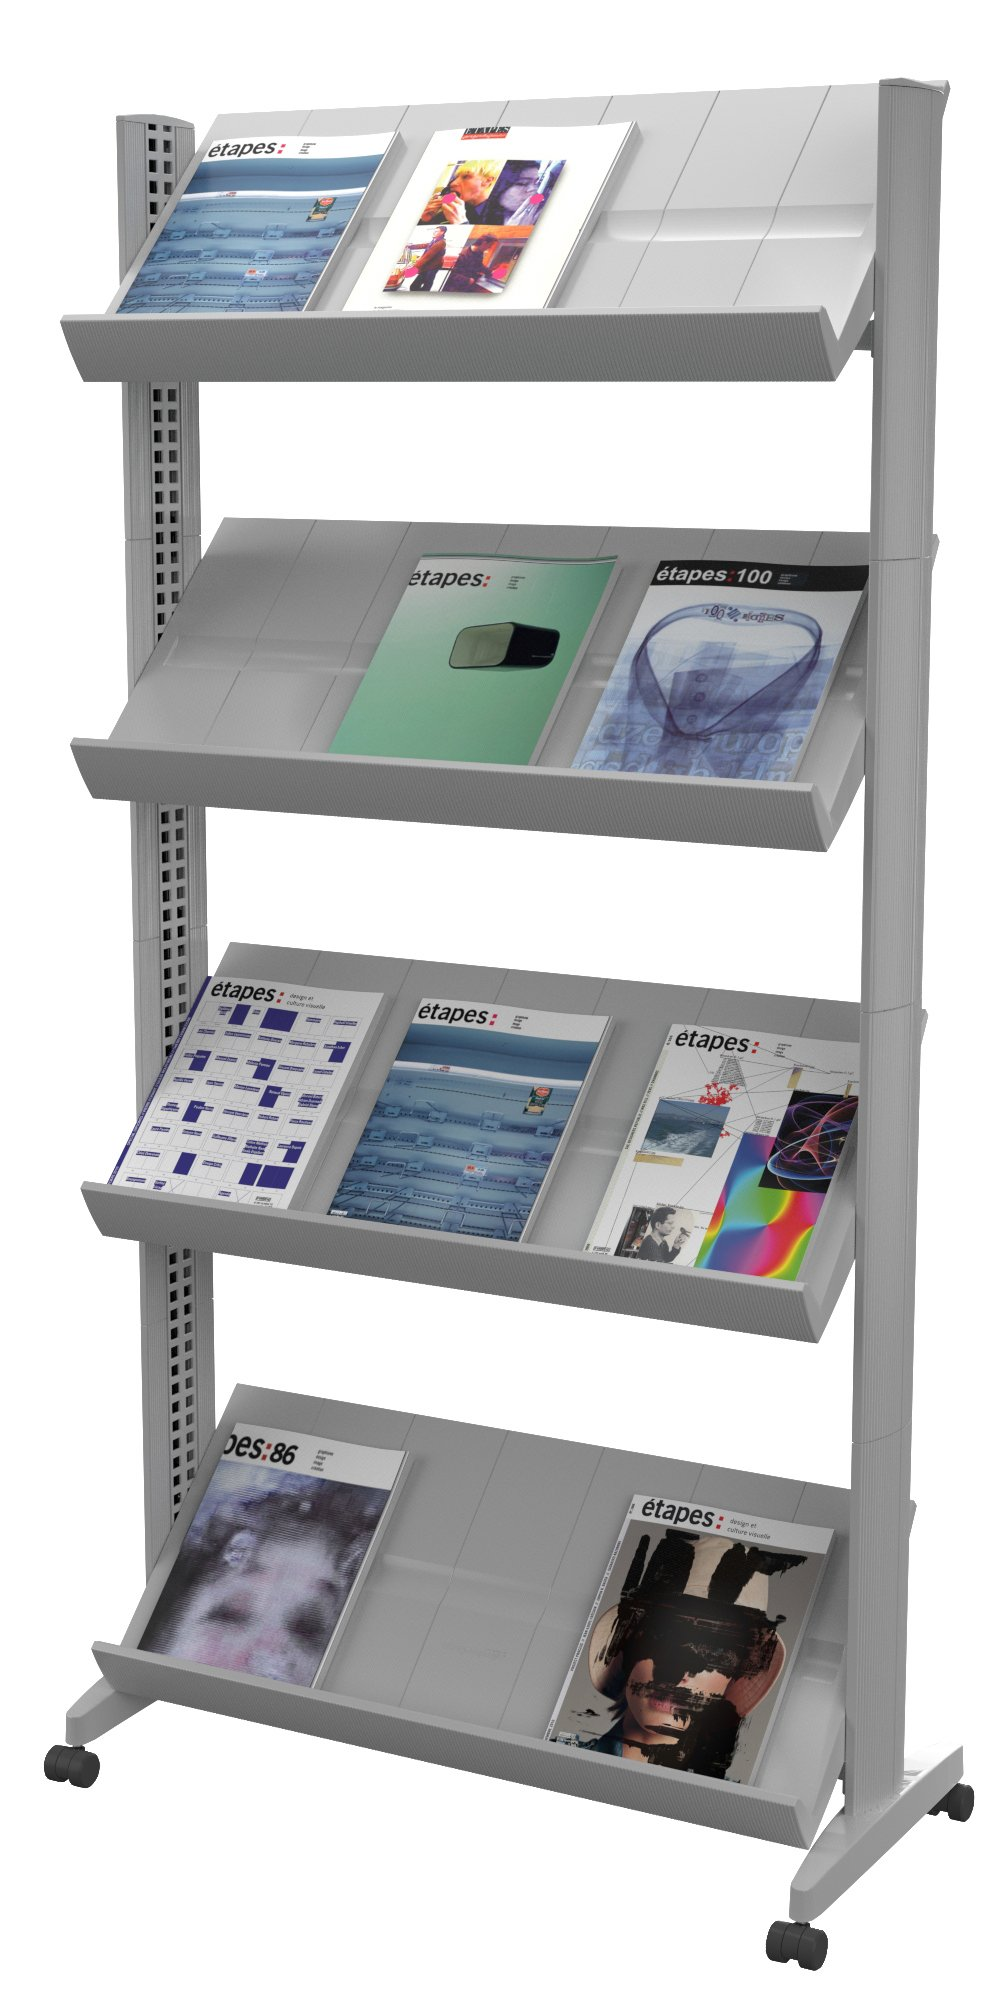 PaperFlow 66 x 33.67 x 15.17 Inches XL Mobile Literature Display, Single Sided, 4 Shelves, Silver (UPP3.35) by Paperflow (Image #1)